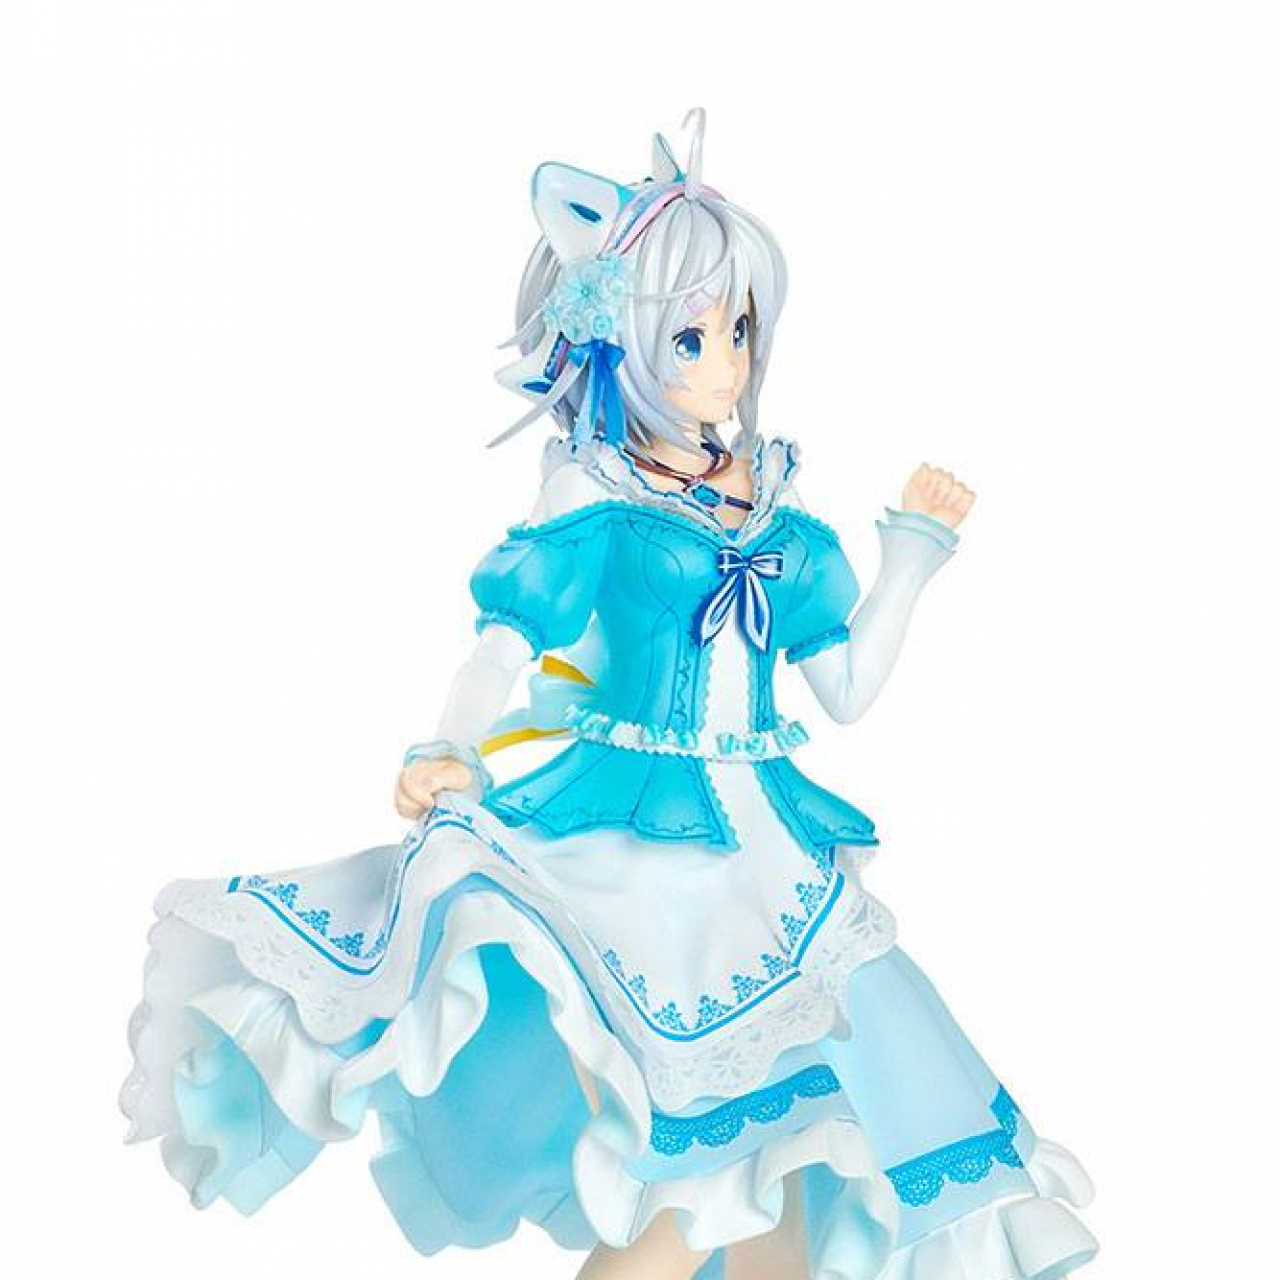 Virtual Youtuber: Dennou Shoujo Siro (25cm, 1/7 scale)